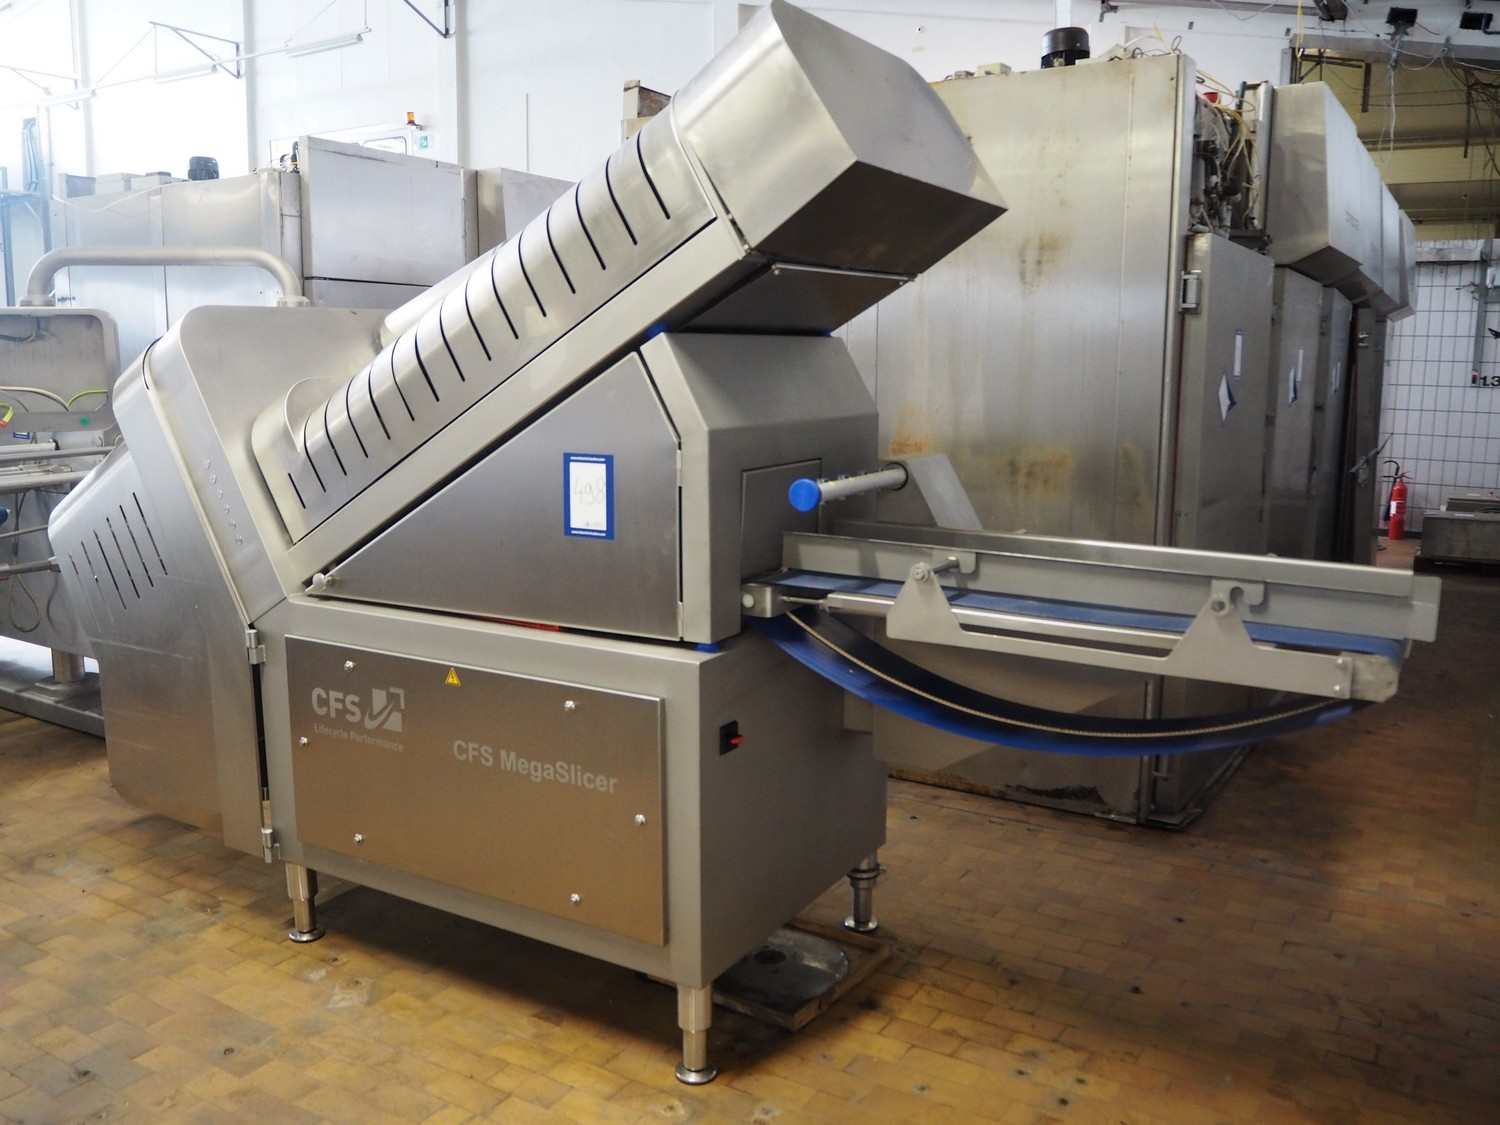 CFS - Slicers - Food processing - Online auction machinery